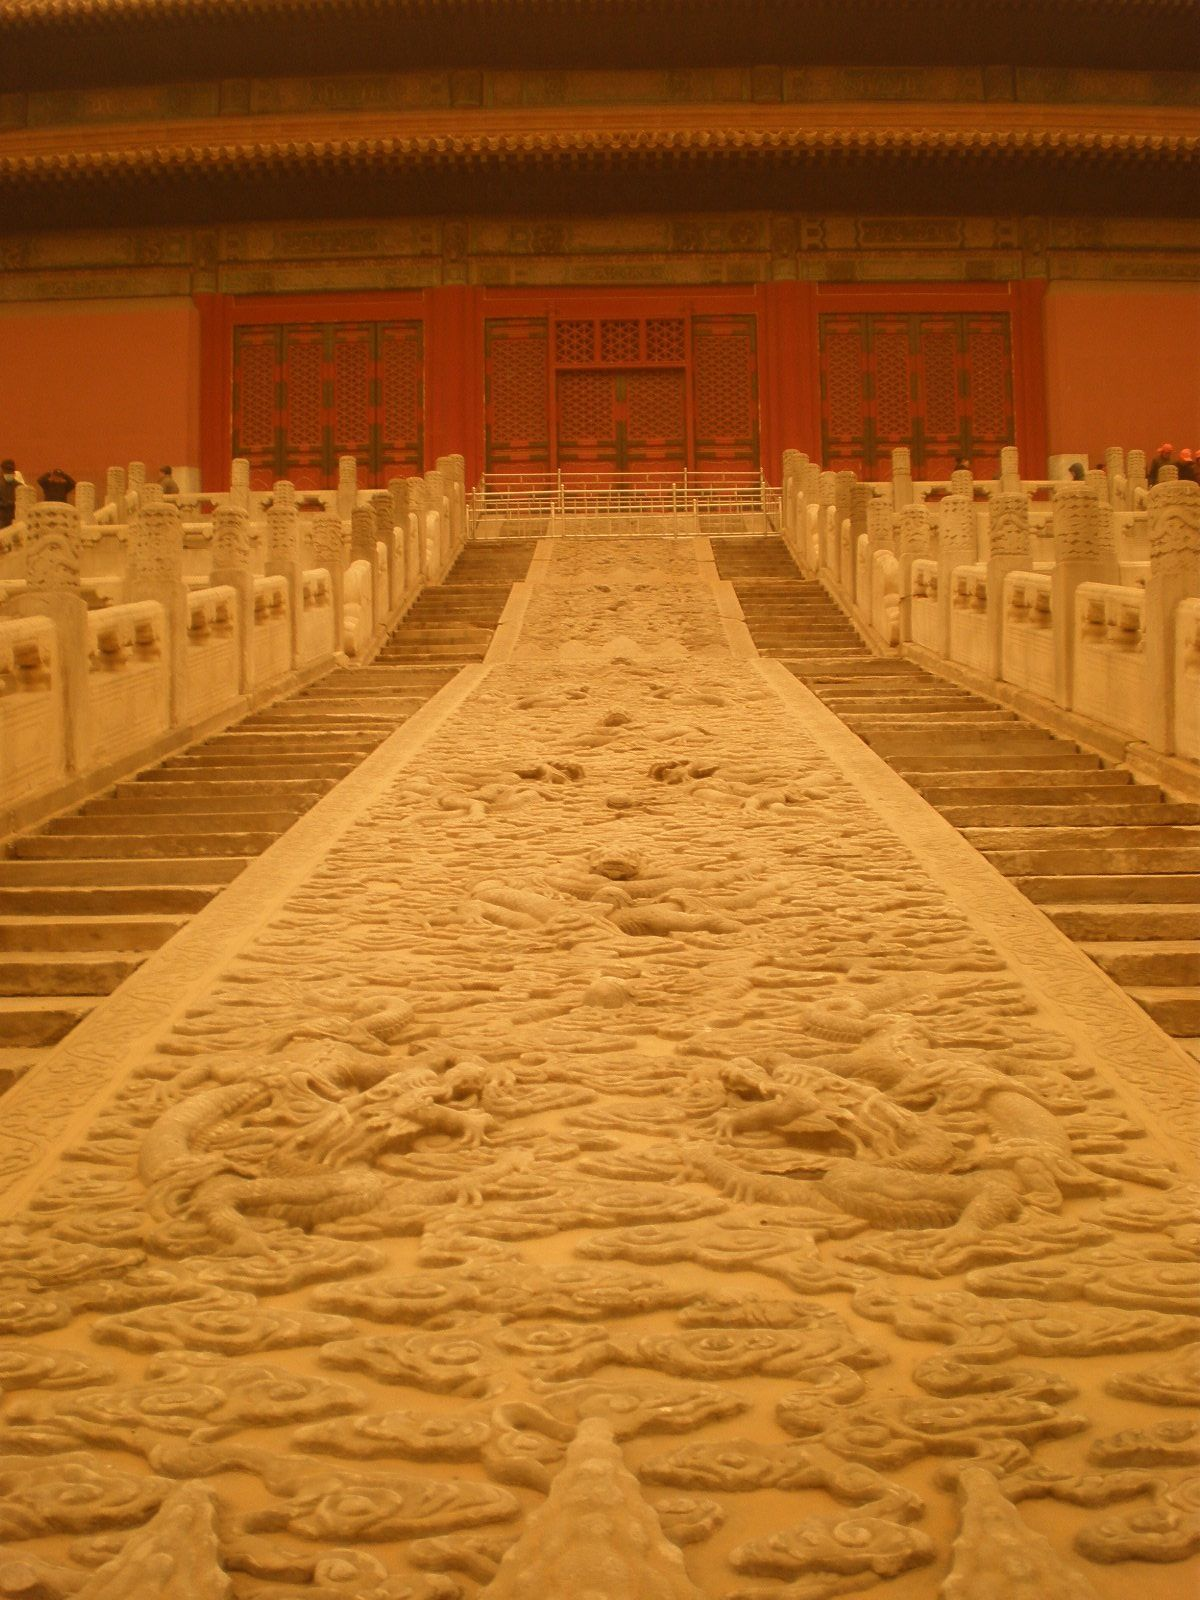 Beautiful memories of the Forbidden City in Beijing...the largest stone carving in the palace - Hall of Supreme Harmony